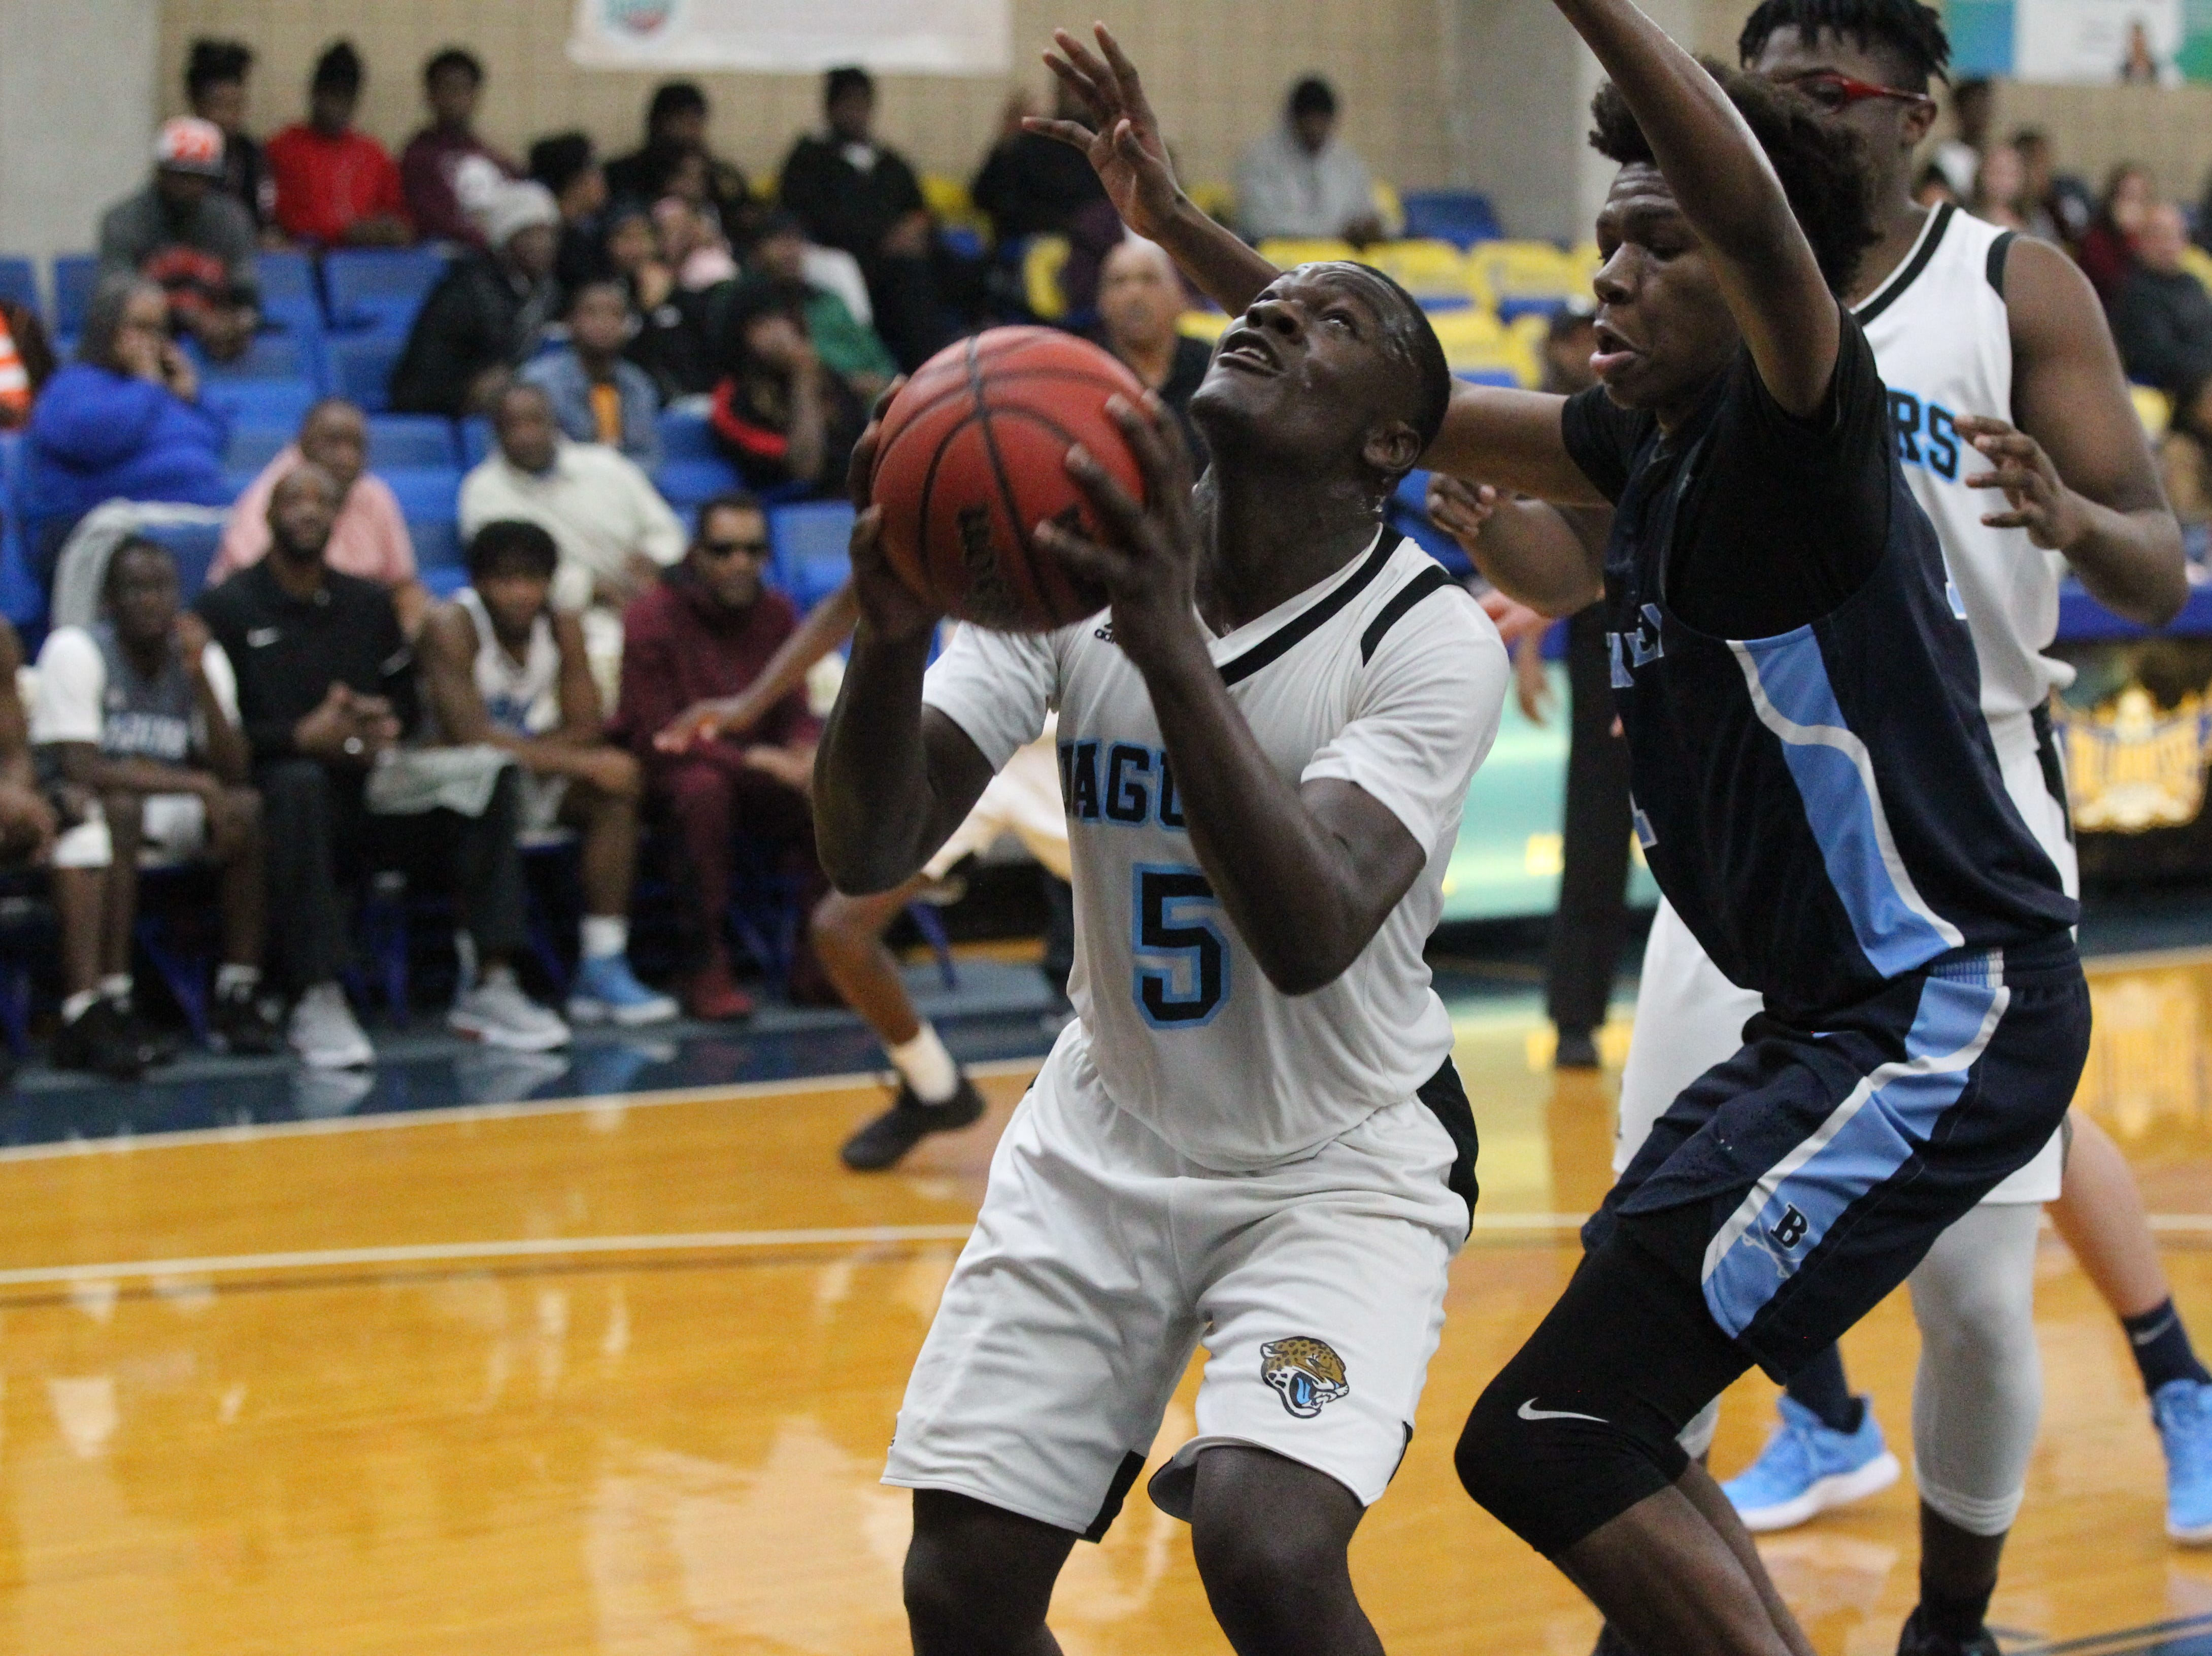 Gadsden County plays Berkeley Prep during the 2018 Capital City Holiday Classic at TCC.